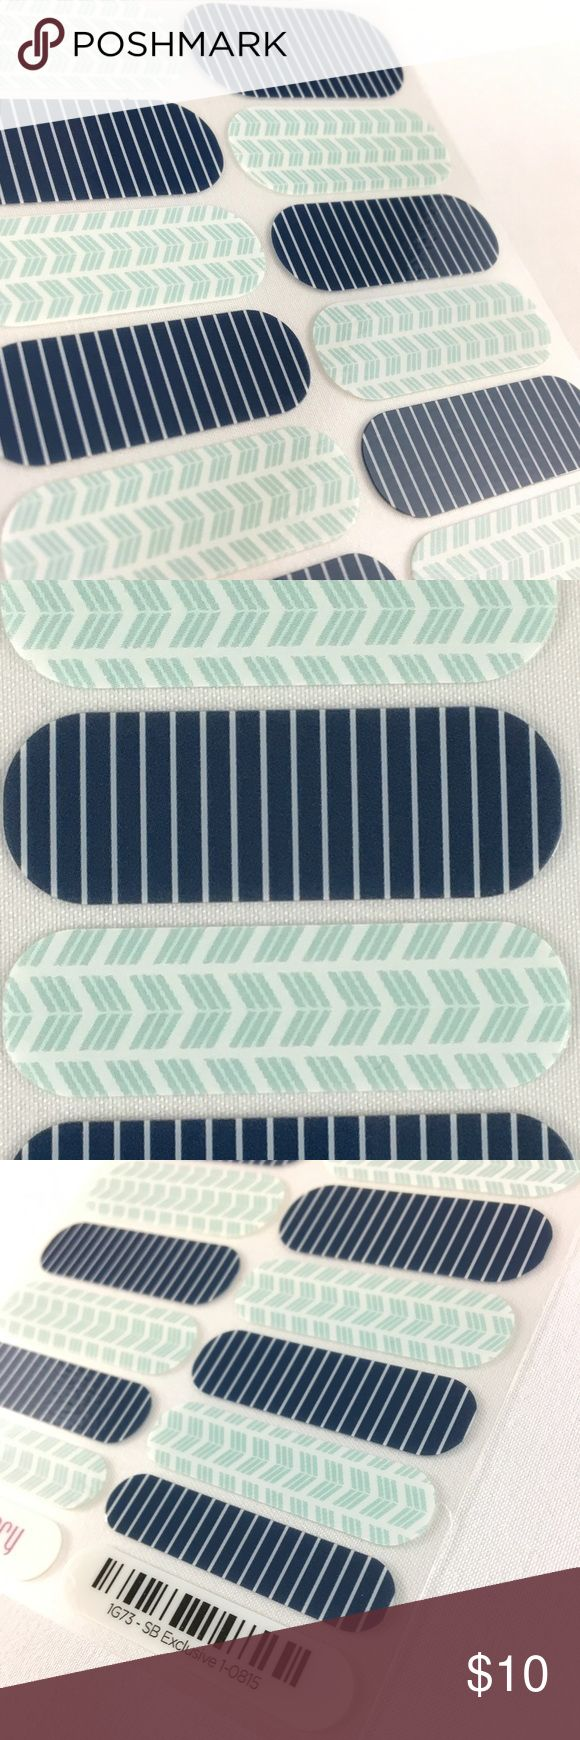 "Jamberry Marina Nail Wraps, SBE, Full Sheet These two designs are great for summer! One navy blue with white pinstripes, the other white with light turquoise arrows in something of a chevron pattern. Both designs are sure to delight!  This Full Sheet includes 18 Nail Wraps; each piece is designed to be used on two nails! Wear them all or as accents, on natural or acrylic nails—lasts up to 2 weeks!  Titled ""SB Exclusive 1-0815"" and numbered 1G73.  This item was an August 2015 StyleBox…"